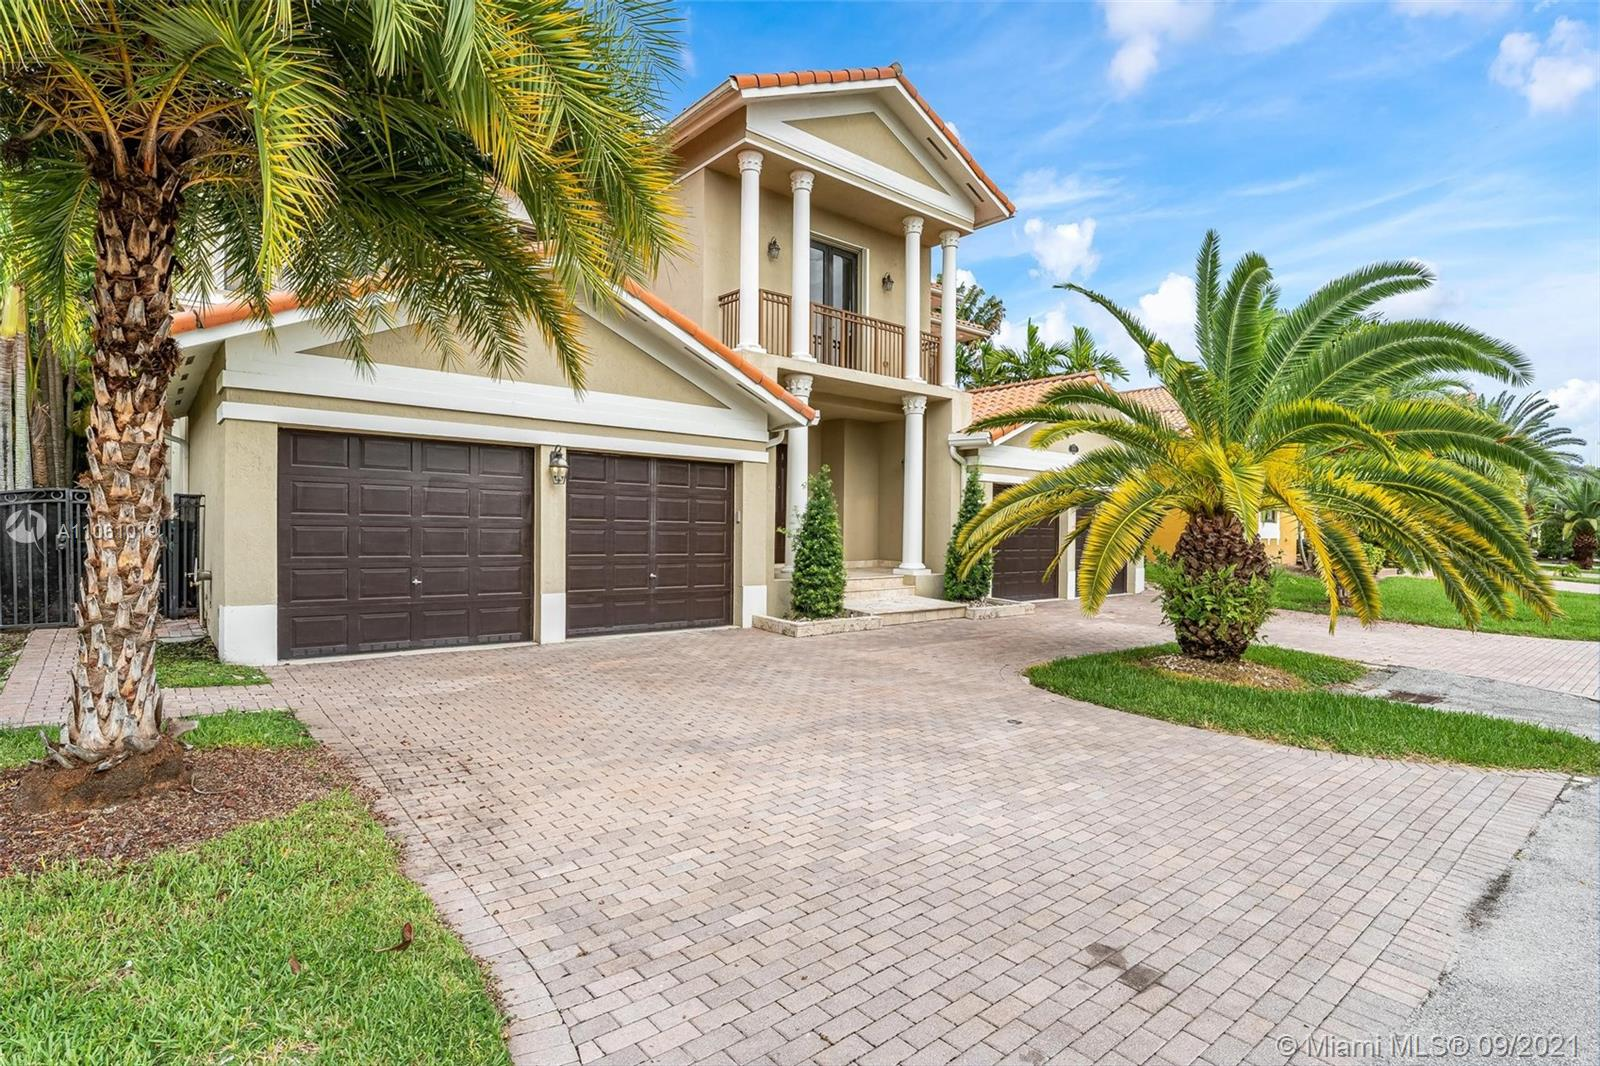 This beautiful two-story home is located in the gated community of Cutler Cay. This 5 bedroom, 5 bathroom home is calming and inviting. The home features high ceilings, a gourmet kitchen with stainless steel appliances and granite countertops, as well as a family room that opens up to the pool and patio. This home has a massive master bedroom and bath, including his and hers showers, dual sinks, bidet, and spacious walk-in closets. The amenities at Cutler Cay include a clubhouse, pool, gym, and sauna, as well as tennis and basketball courts. Don't miss out on this amazing property